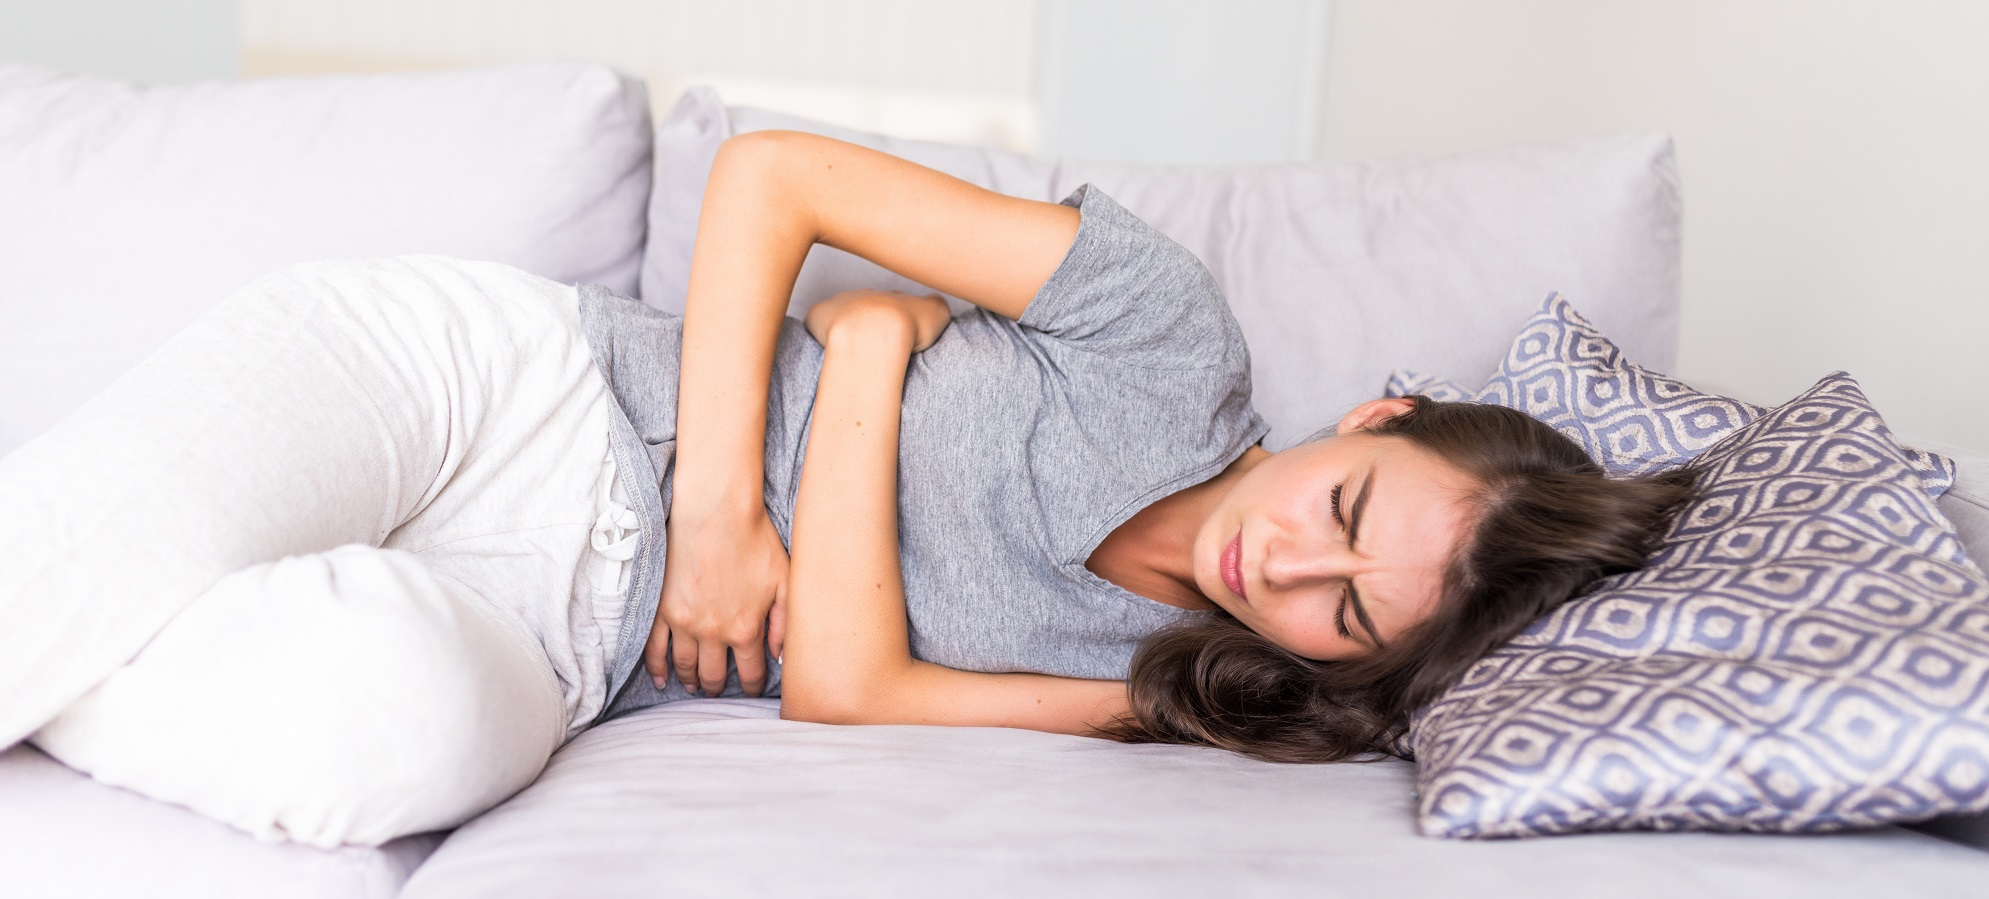 Stop Heartburn, Bloating, Gas, and Pain